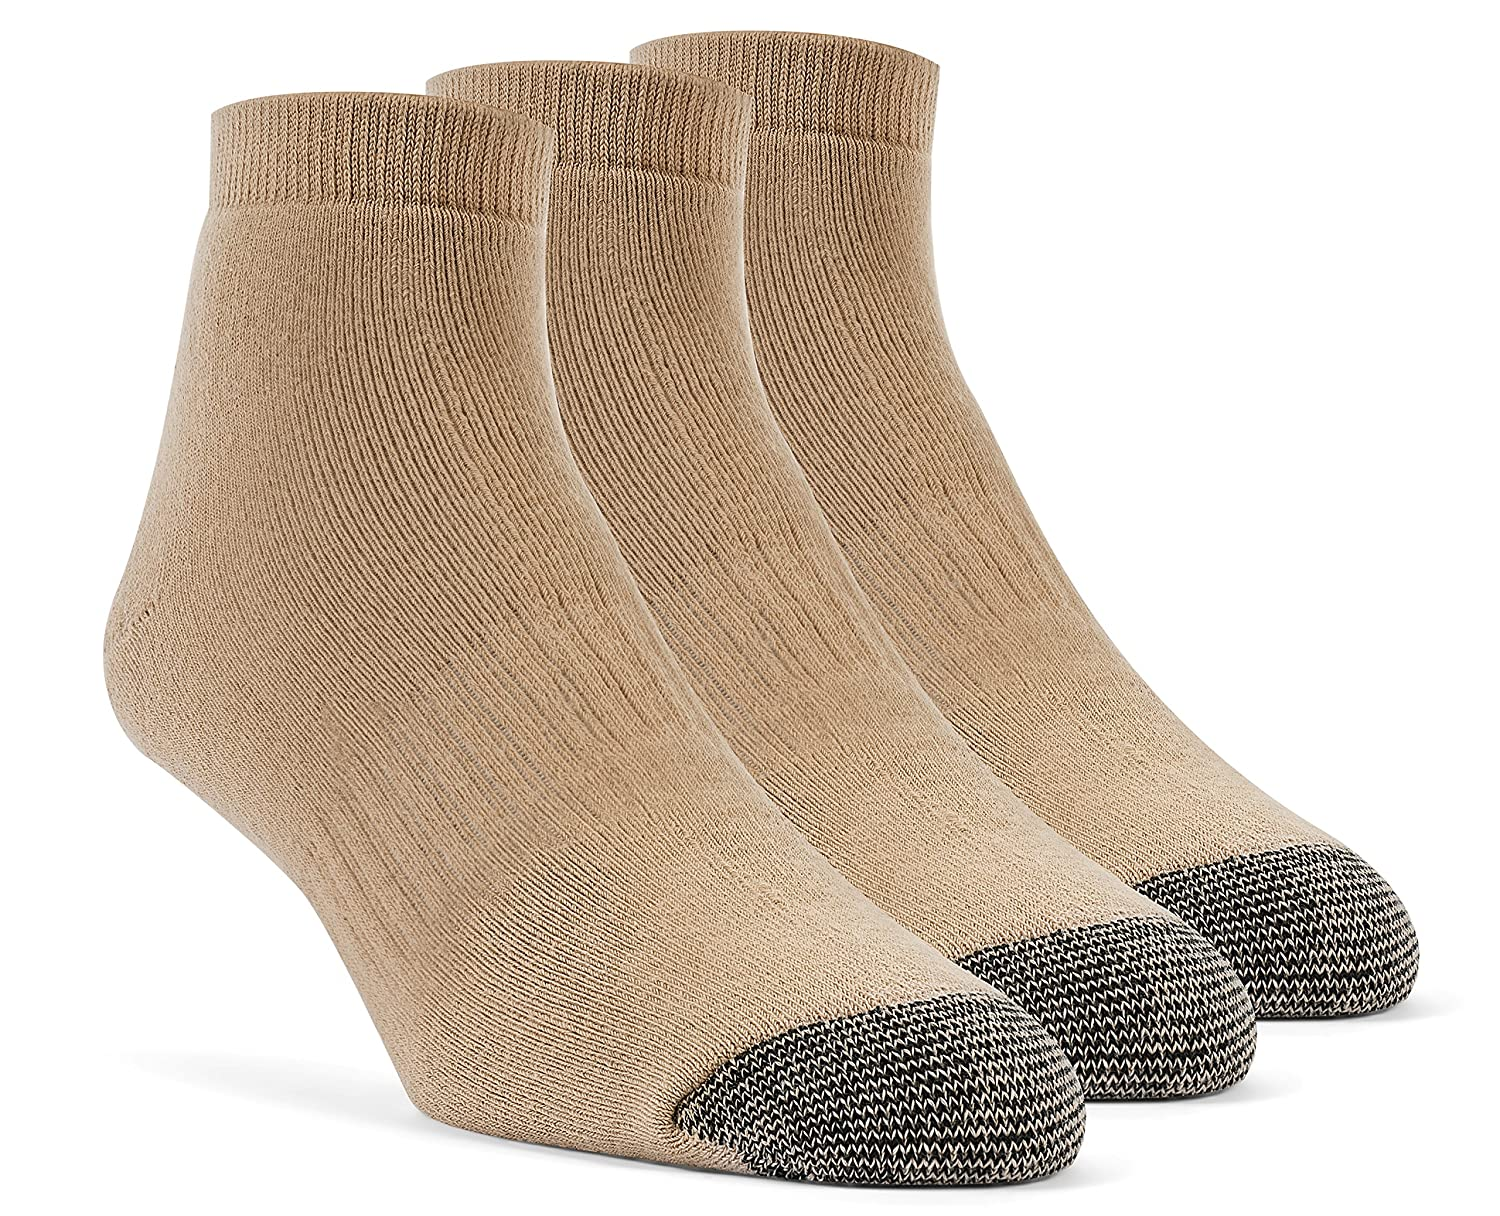 3 Pairs YolBer Womens Cotton Super Soft Ankle Cushion Socks